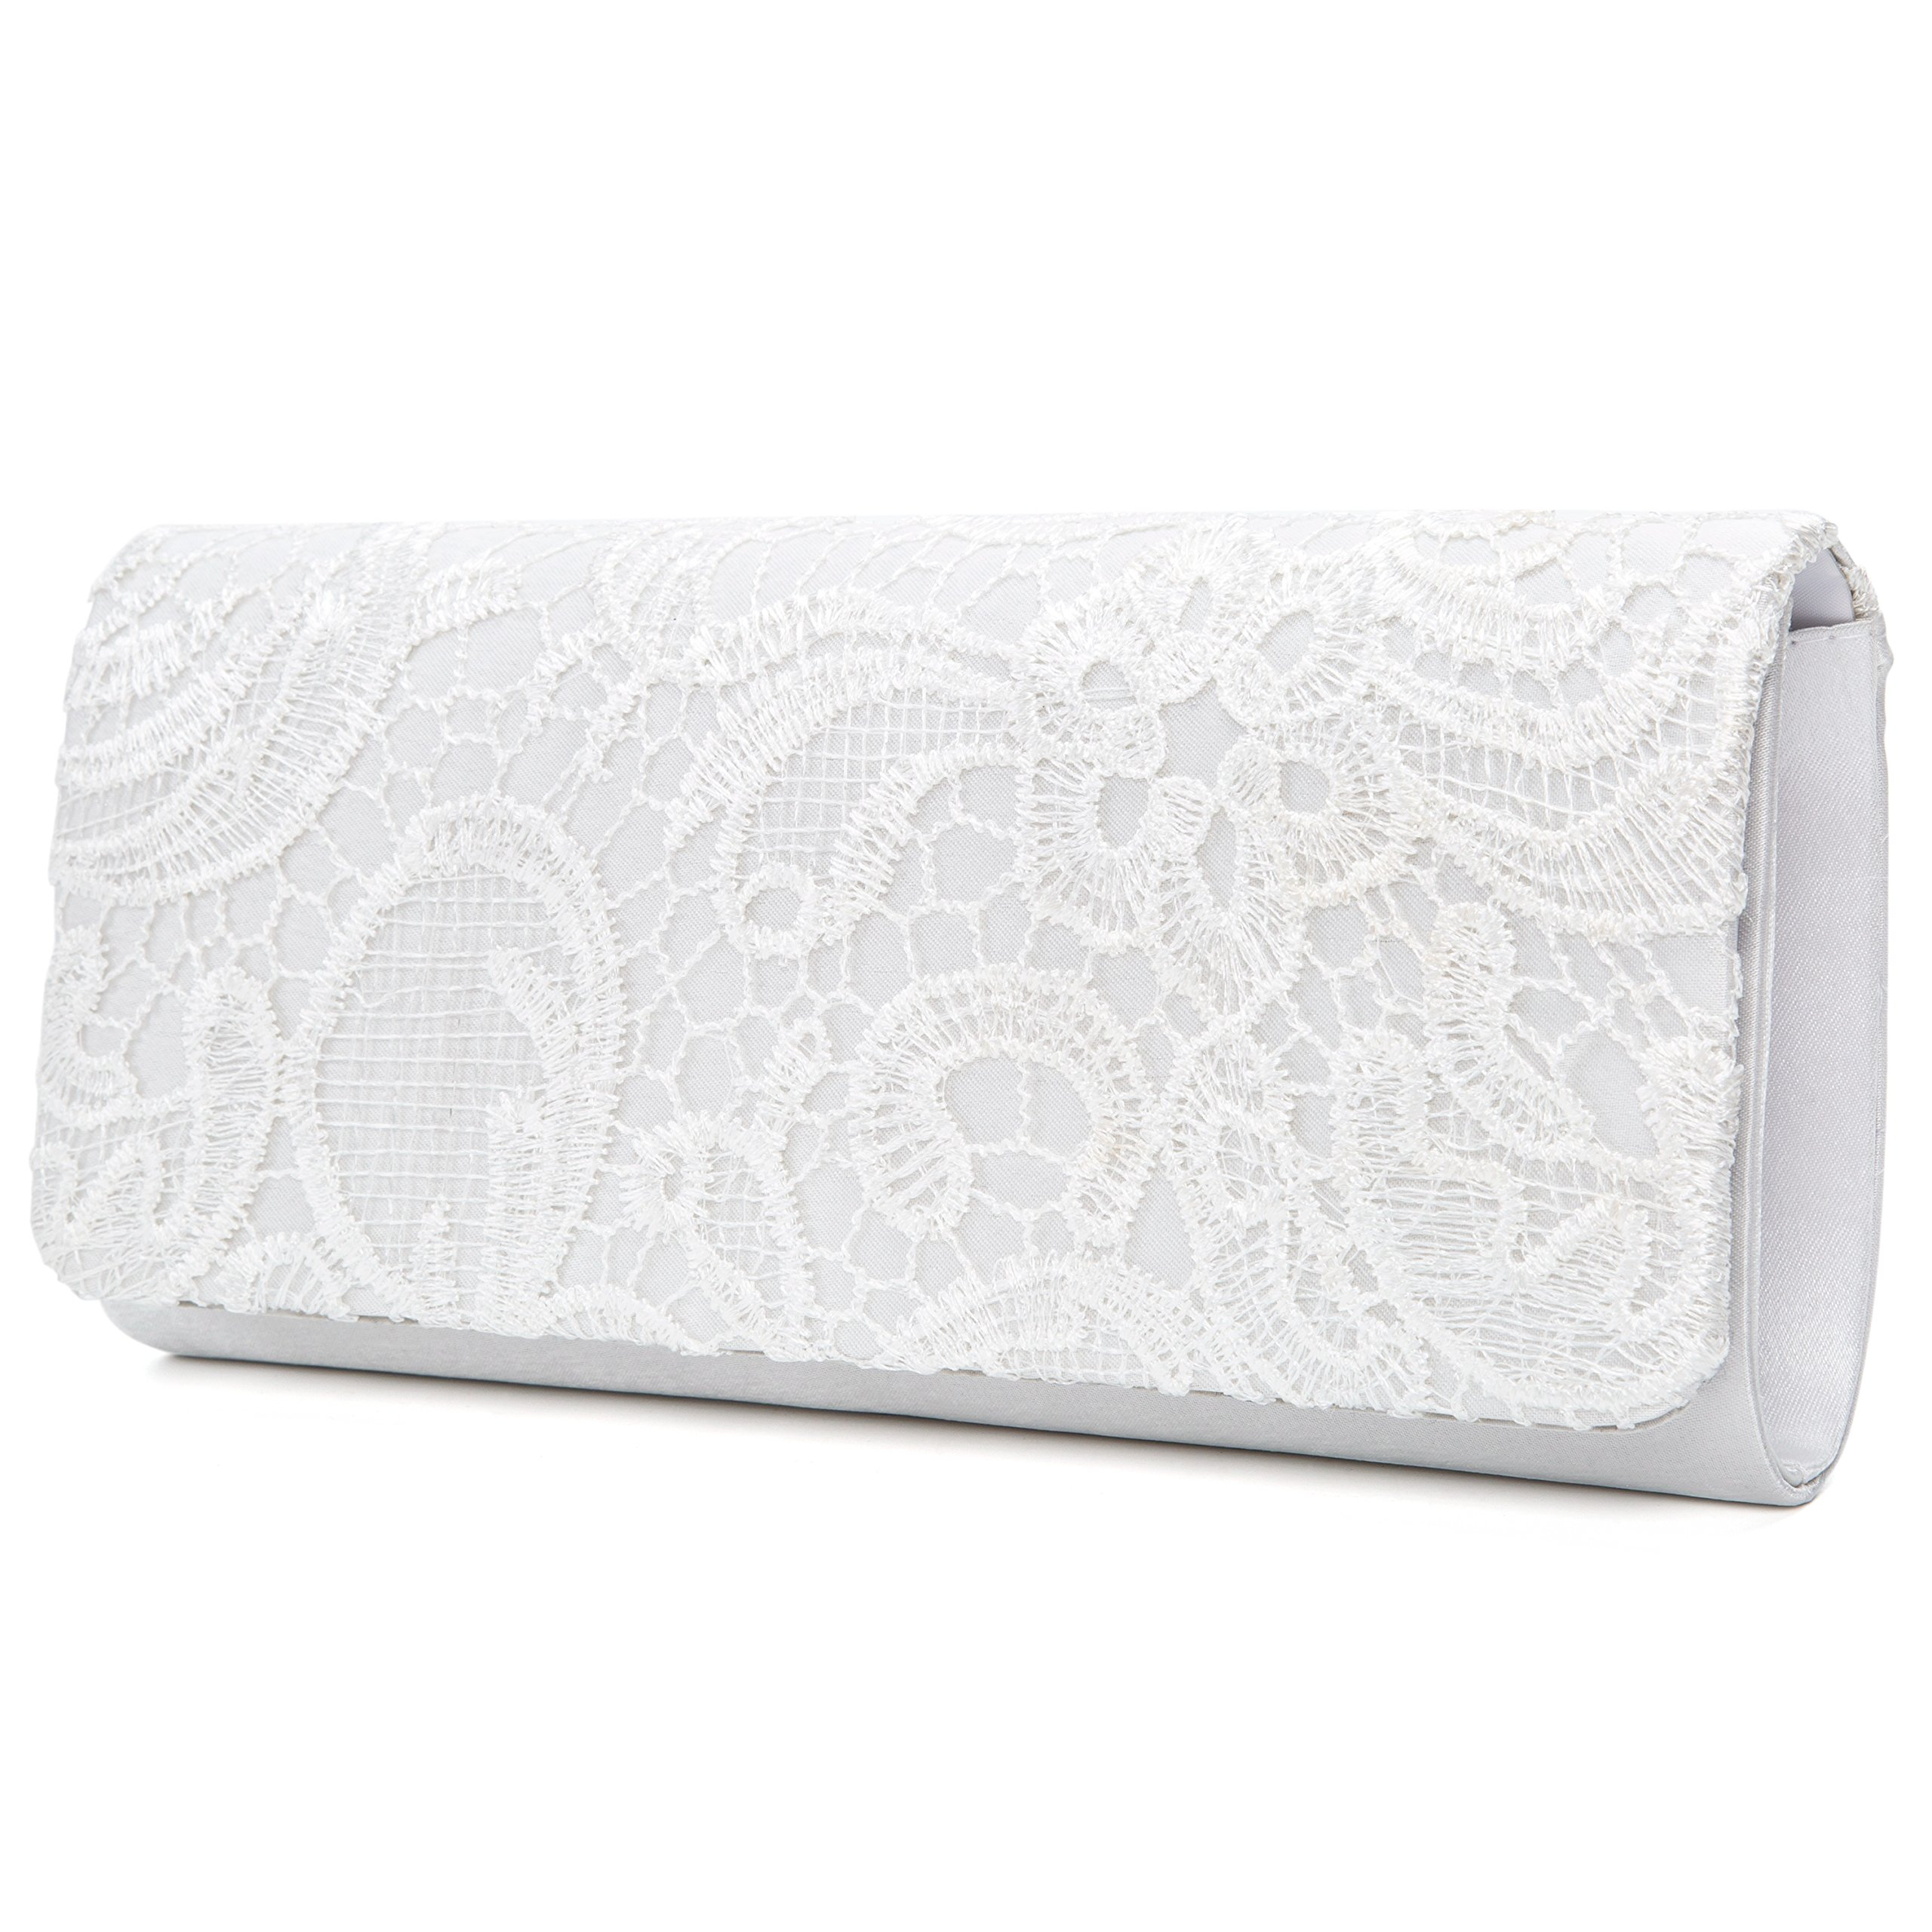 Chichitop Women's Elegant Floral Lace Evening Party Clutch Bags Bridal Wedding Purse Handbag,White by Chichitop (Image #4)